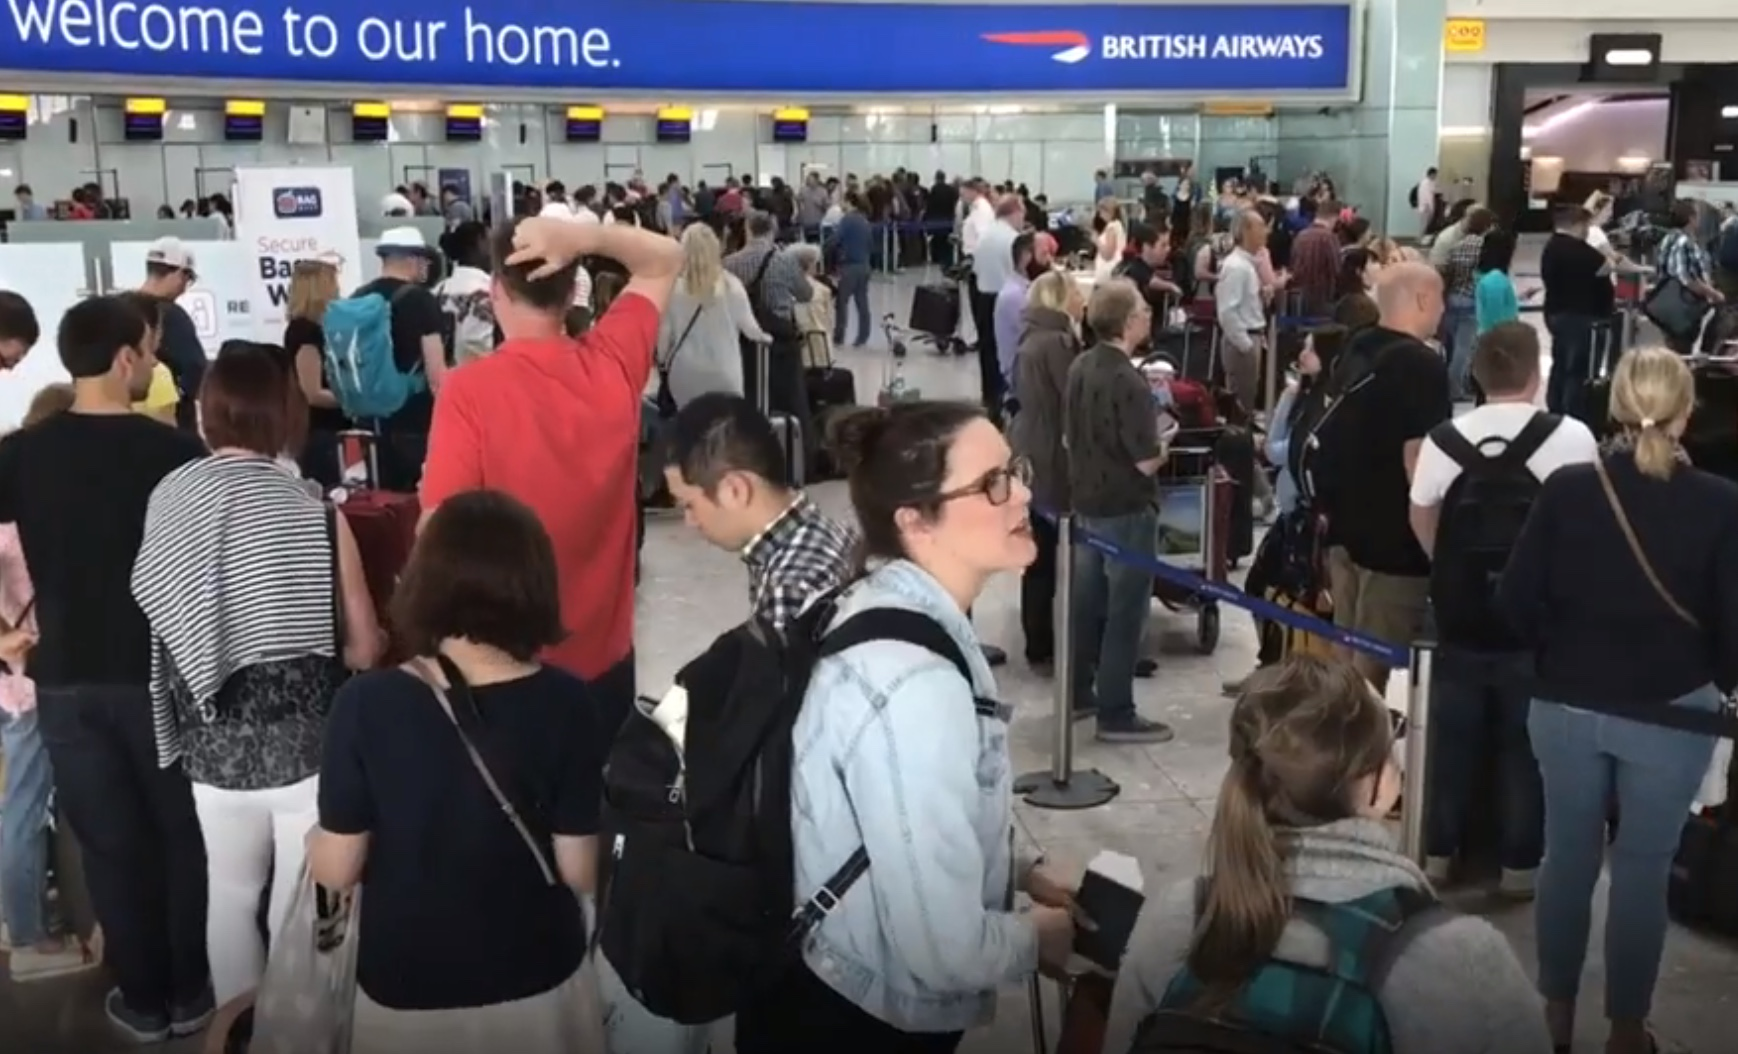 Terminal Five - No one wanted to stay in British Airways' home for hours on end